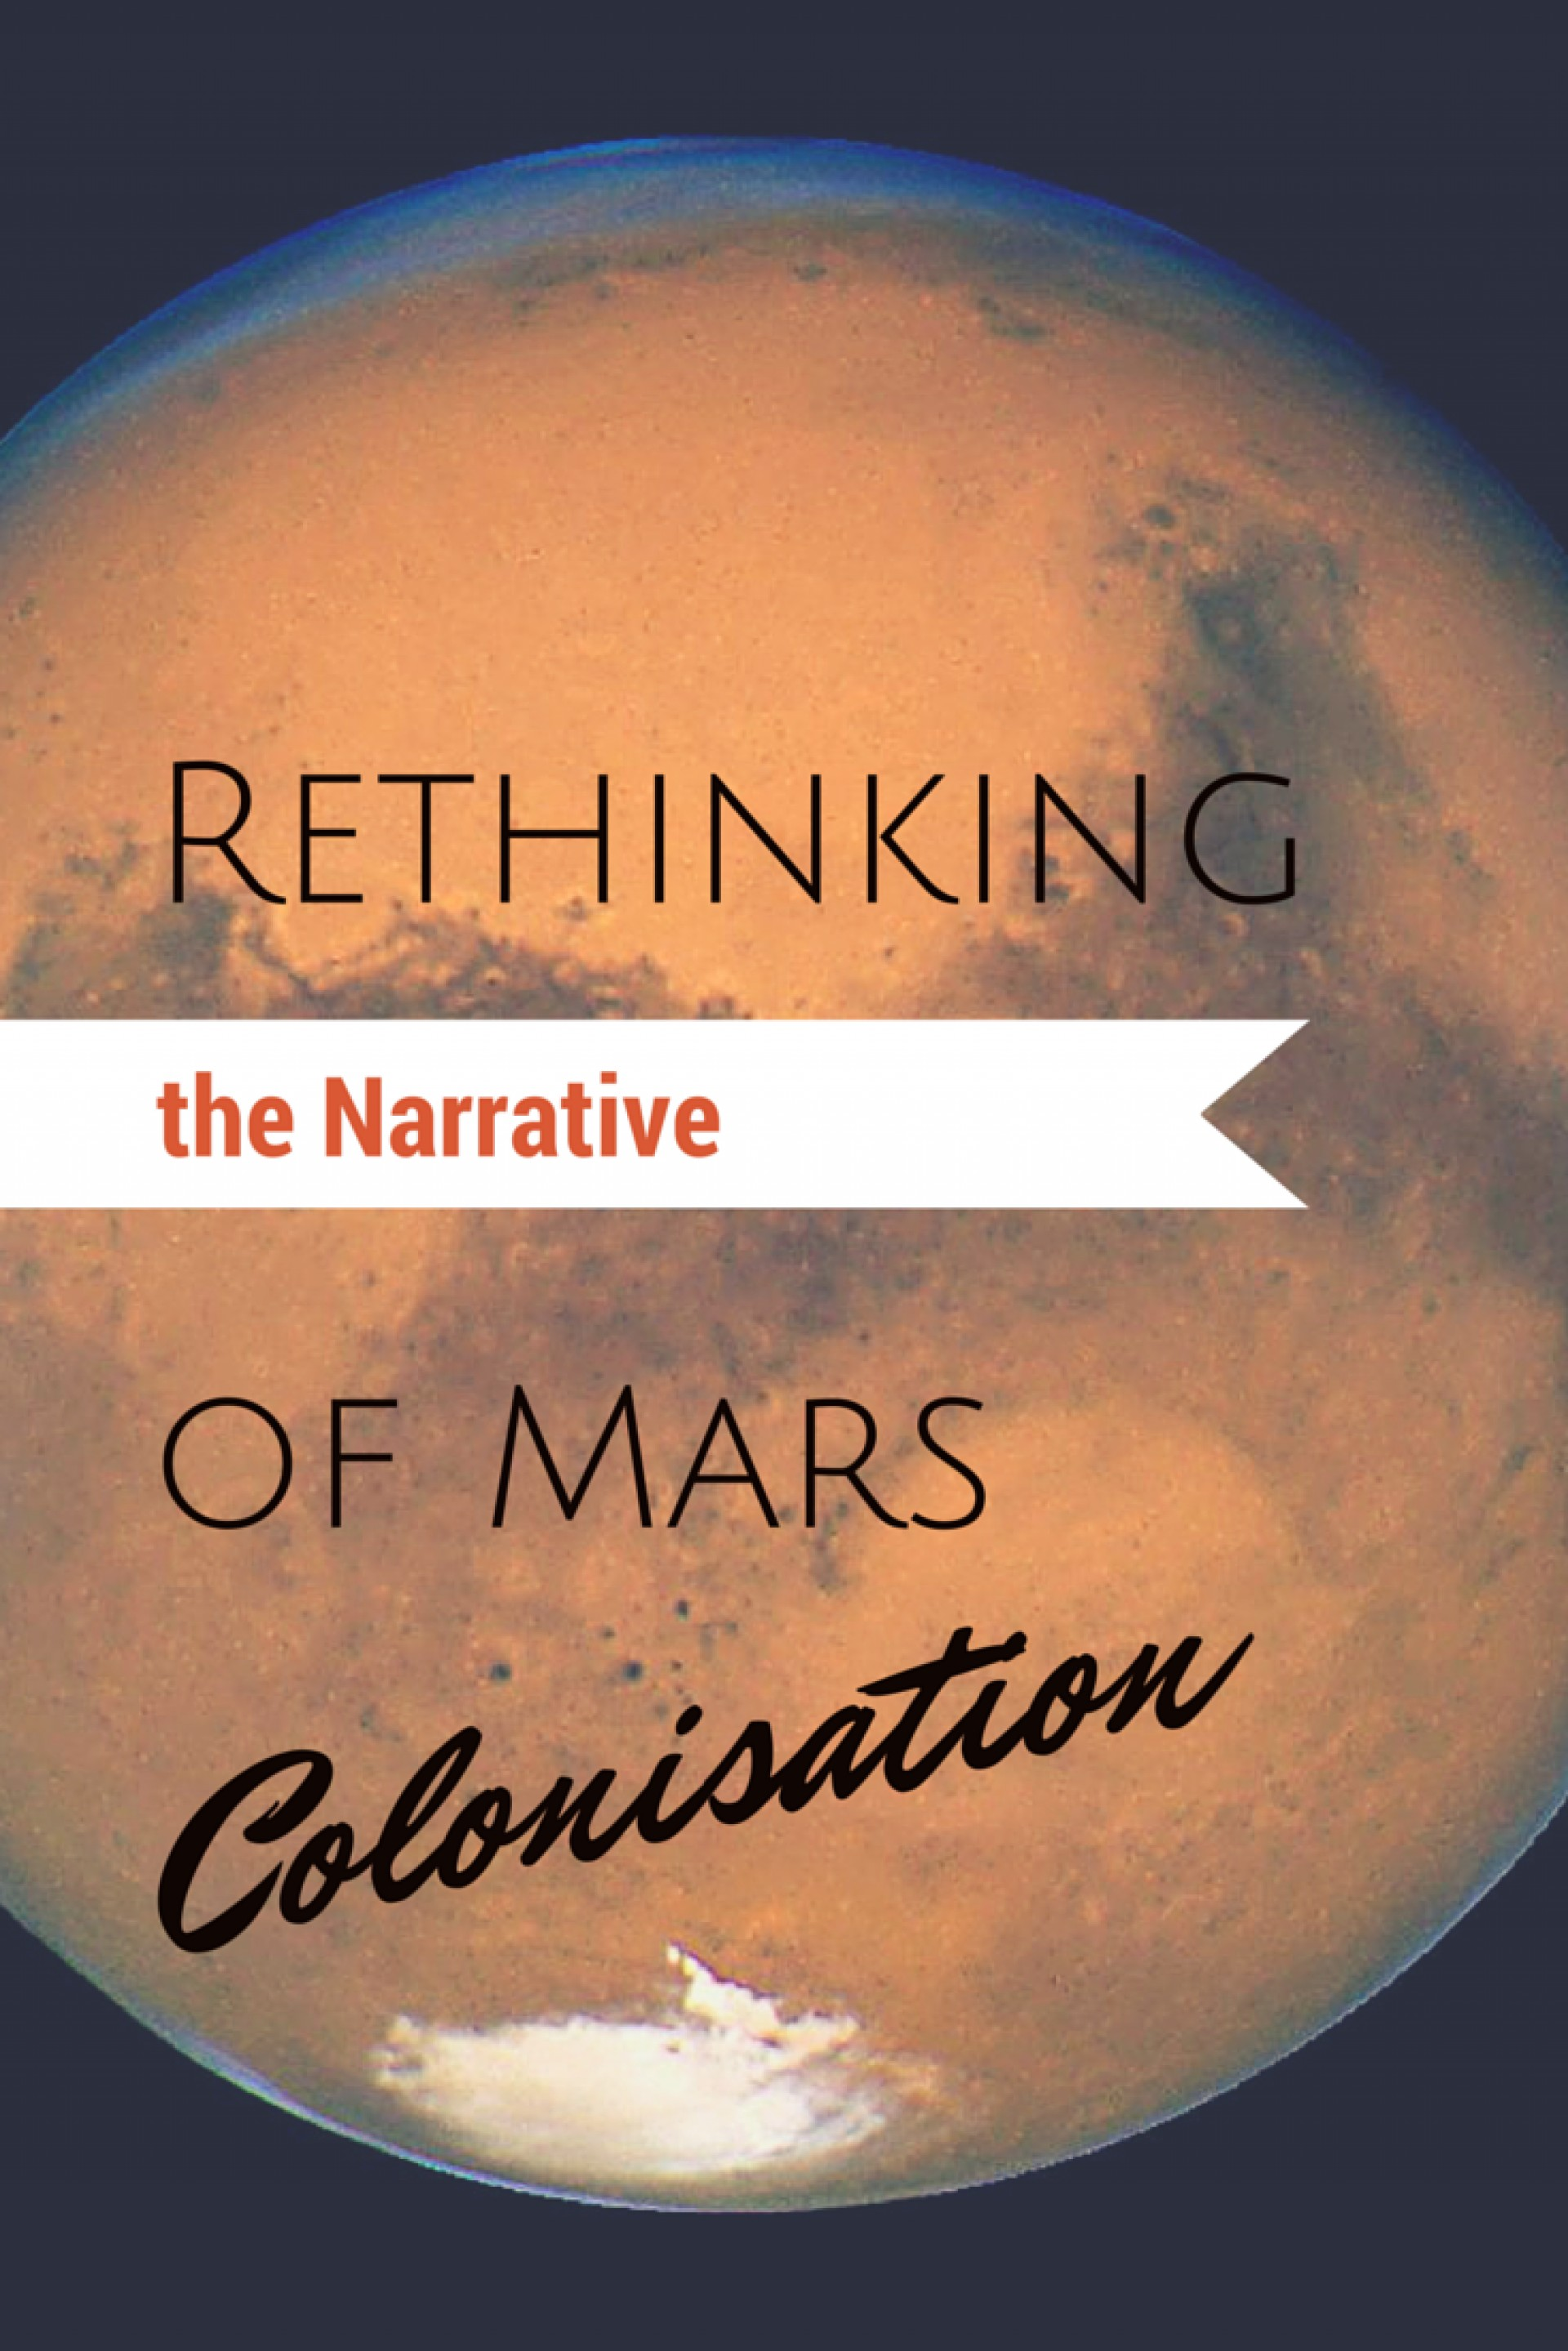 013 Rethinking The Narrative Of Mars Colonisation Essay Example Settlement Remarkable On 1920